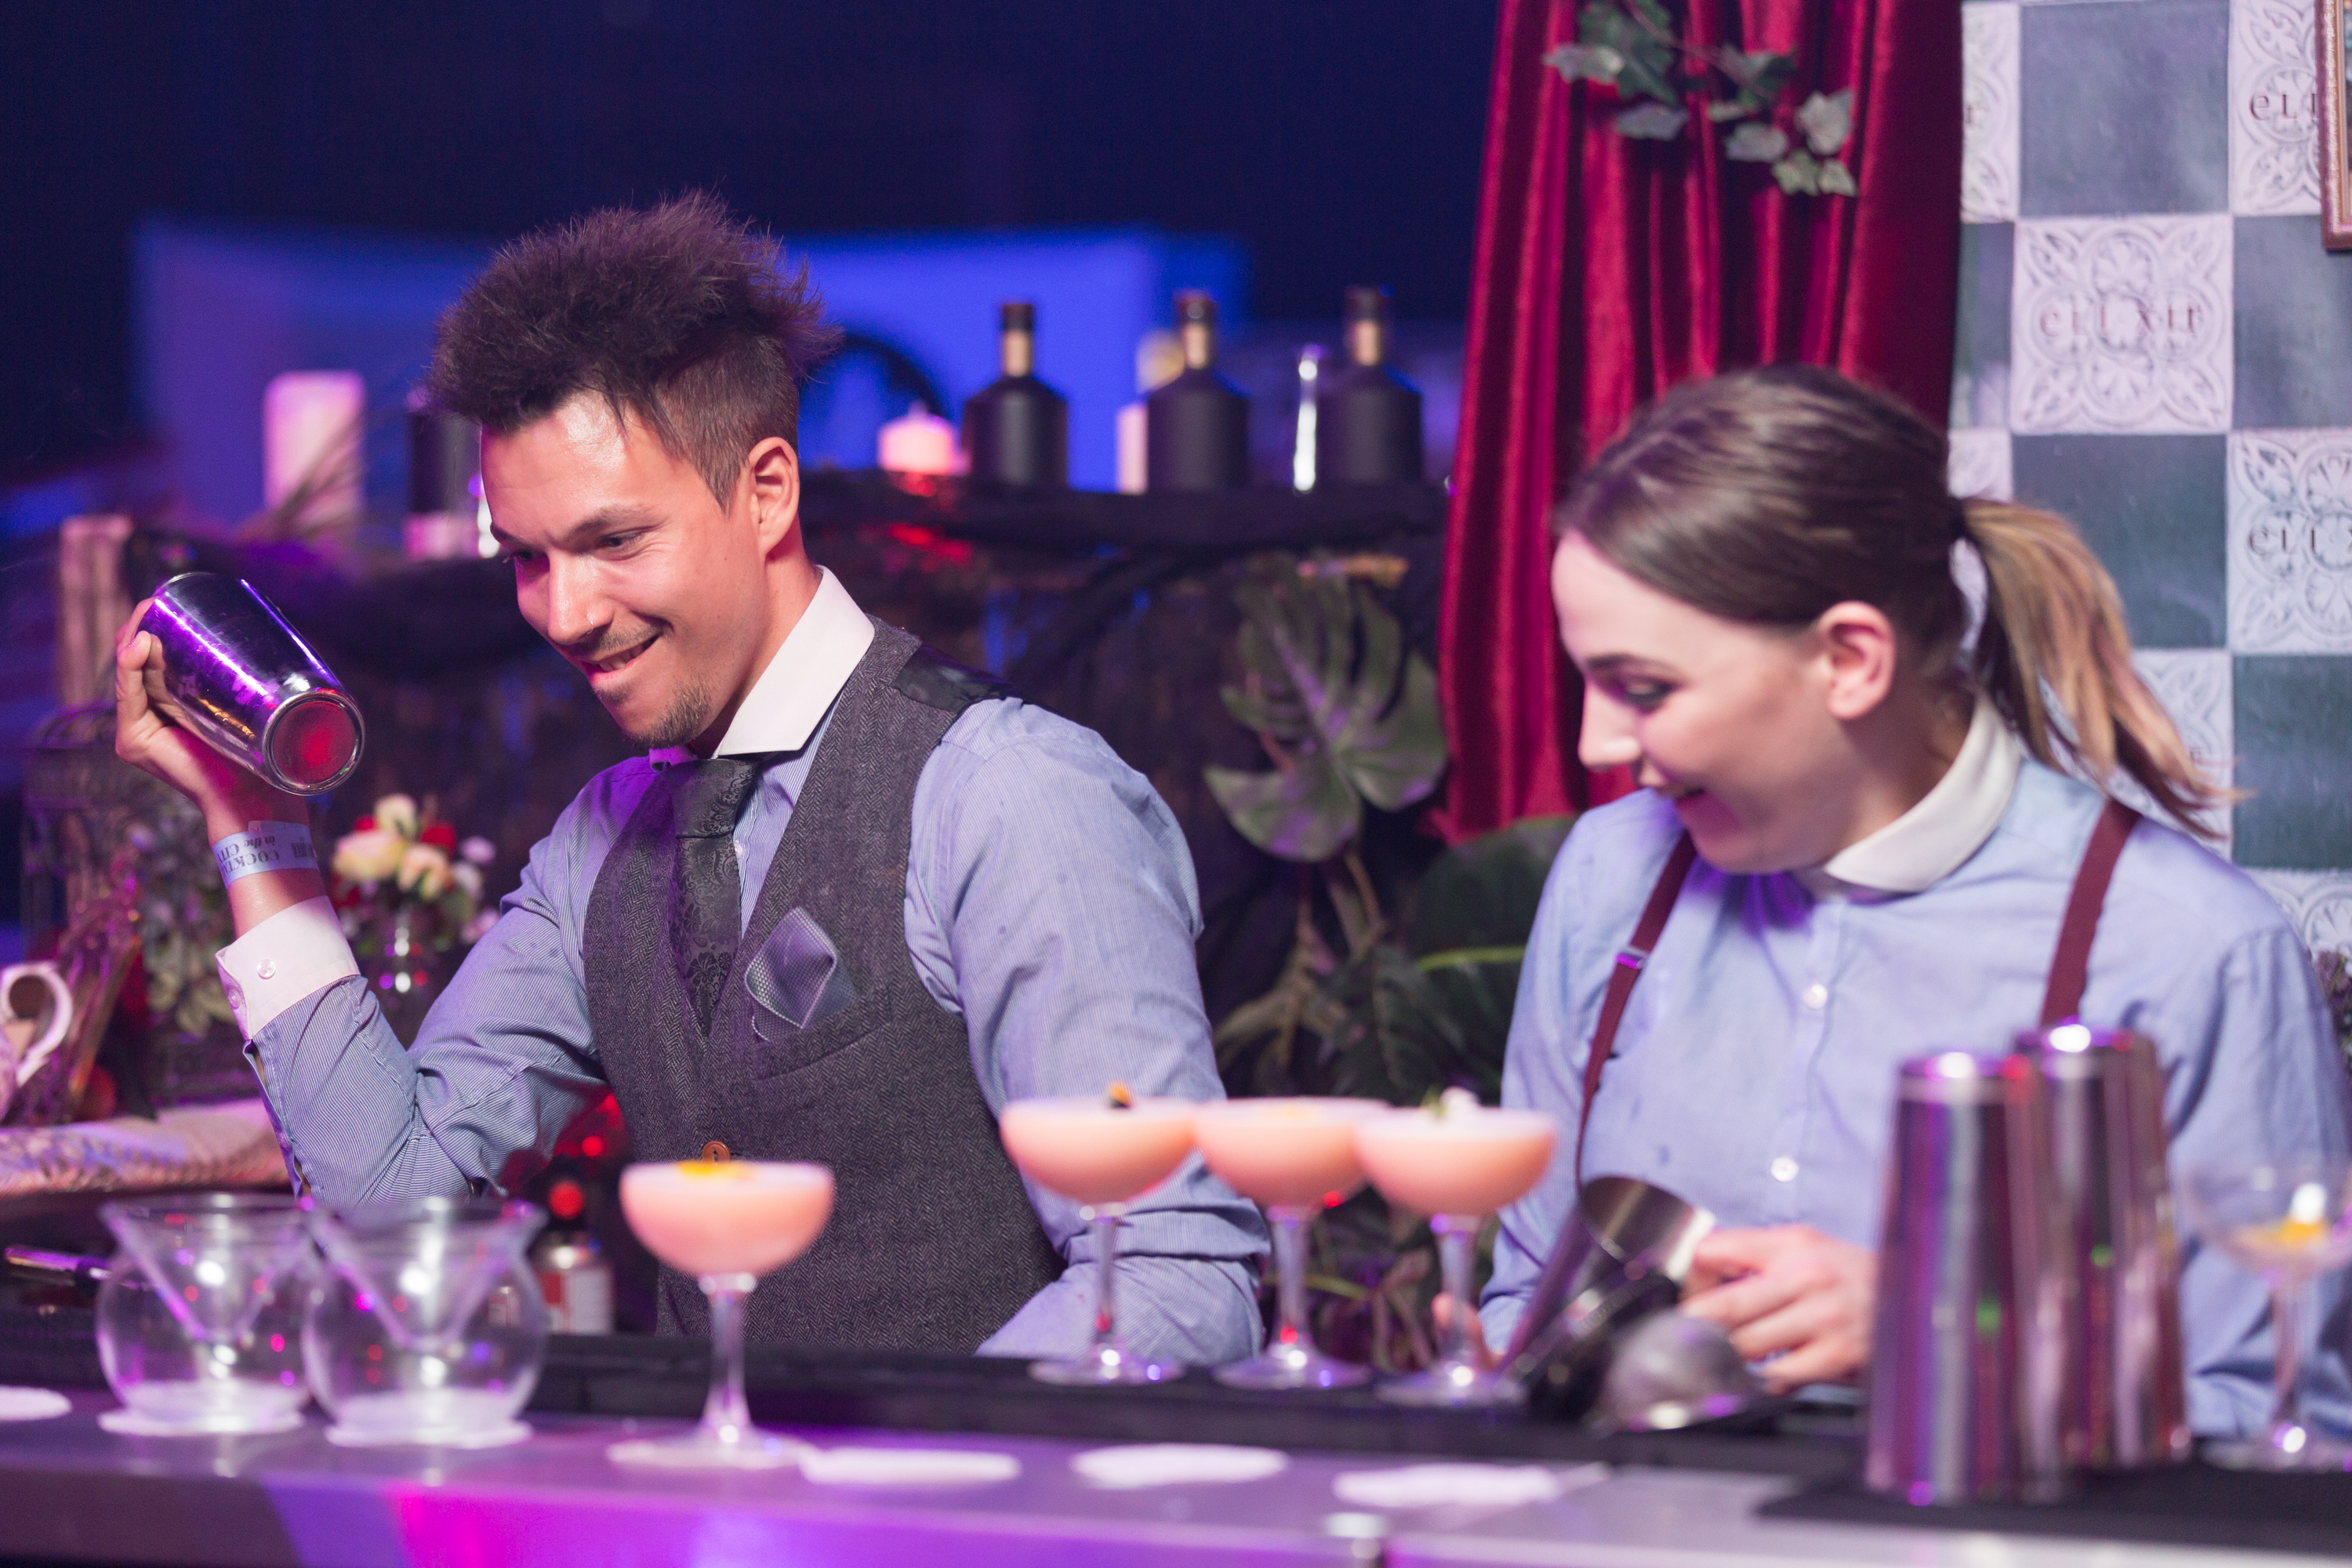 Cocktails in the City Glasgow 2017